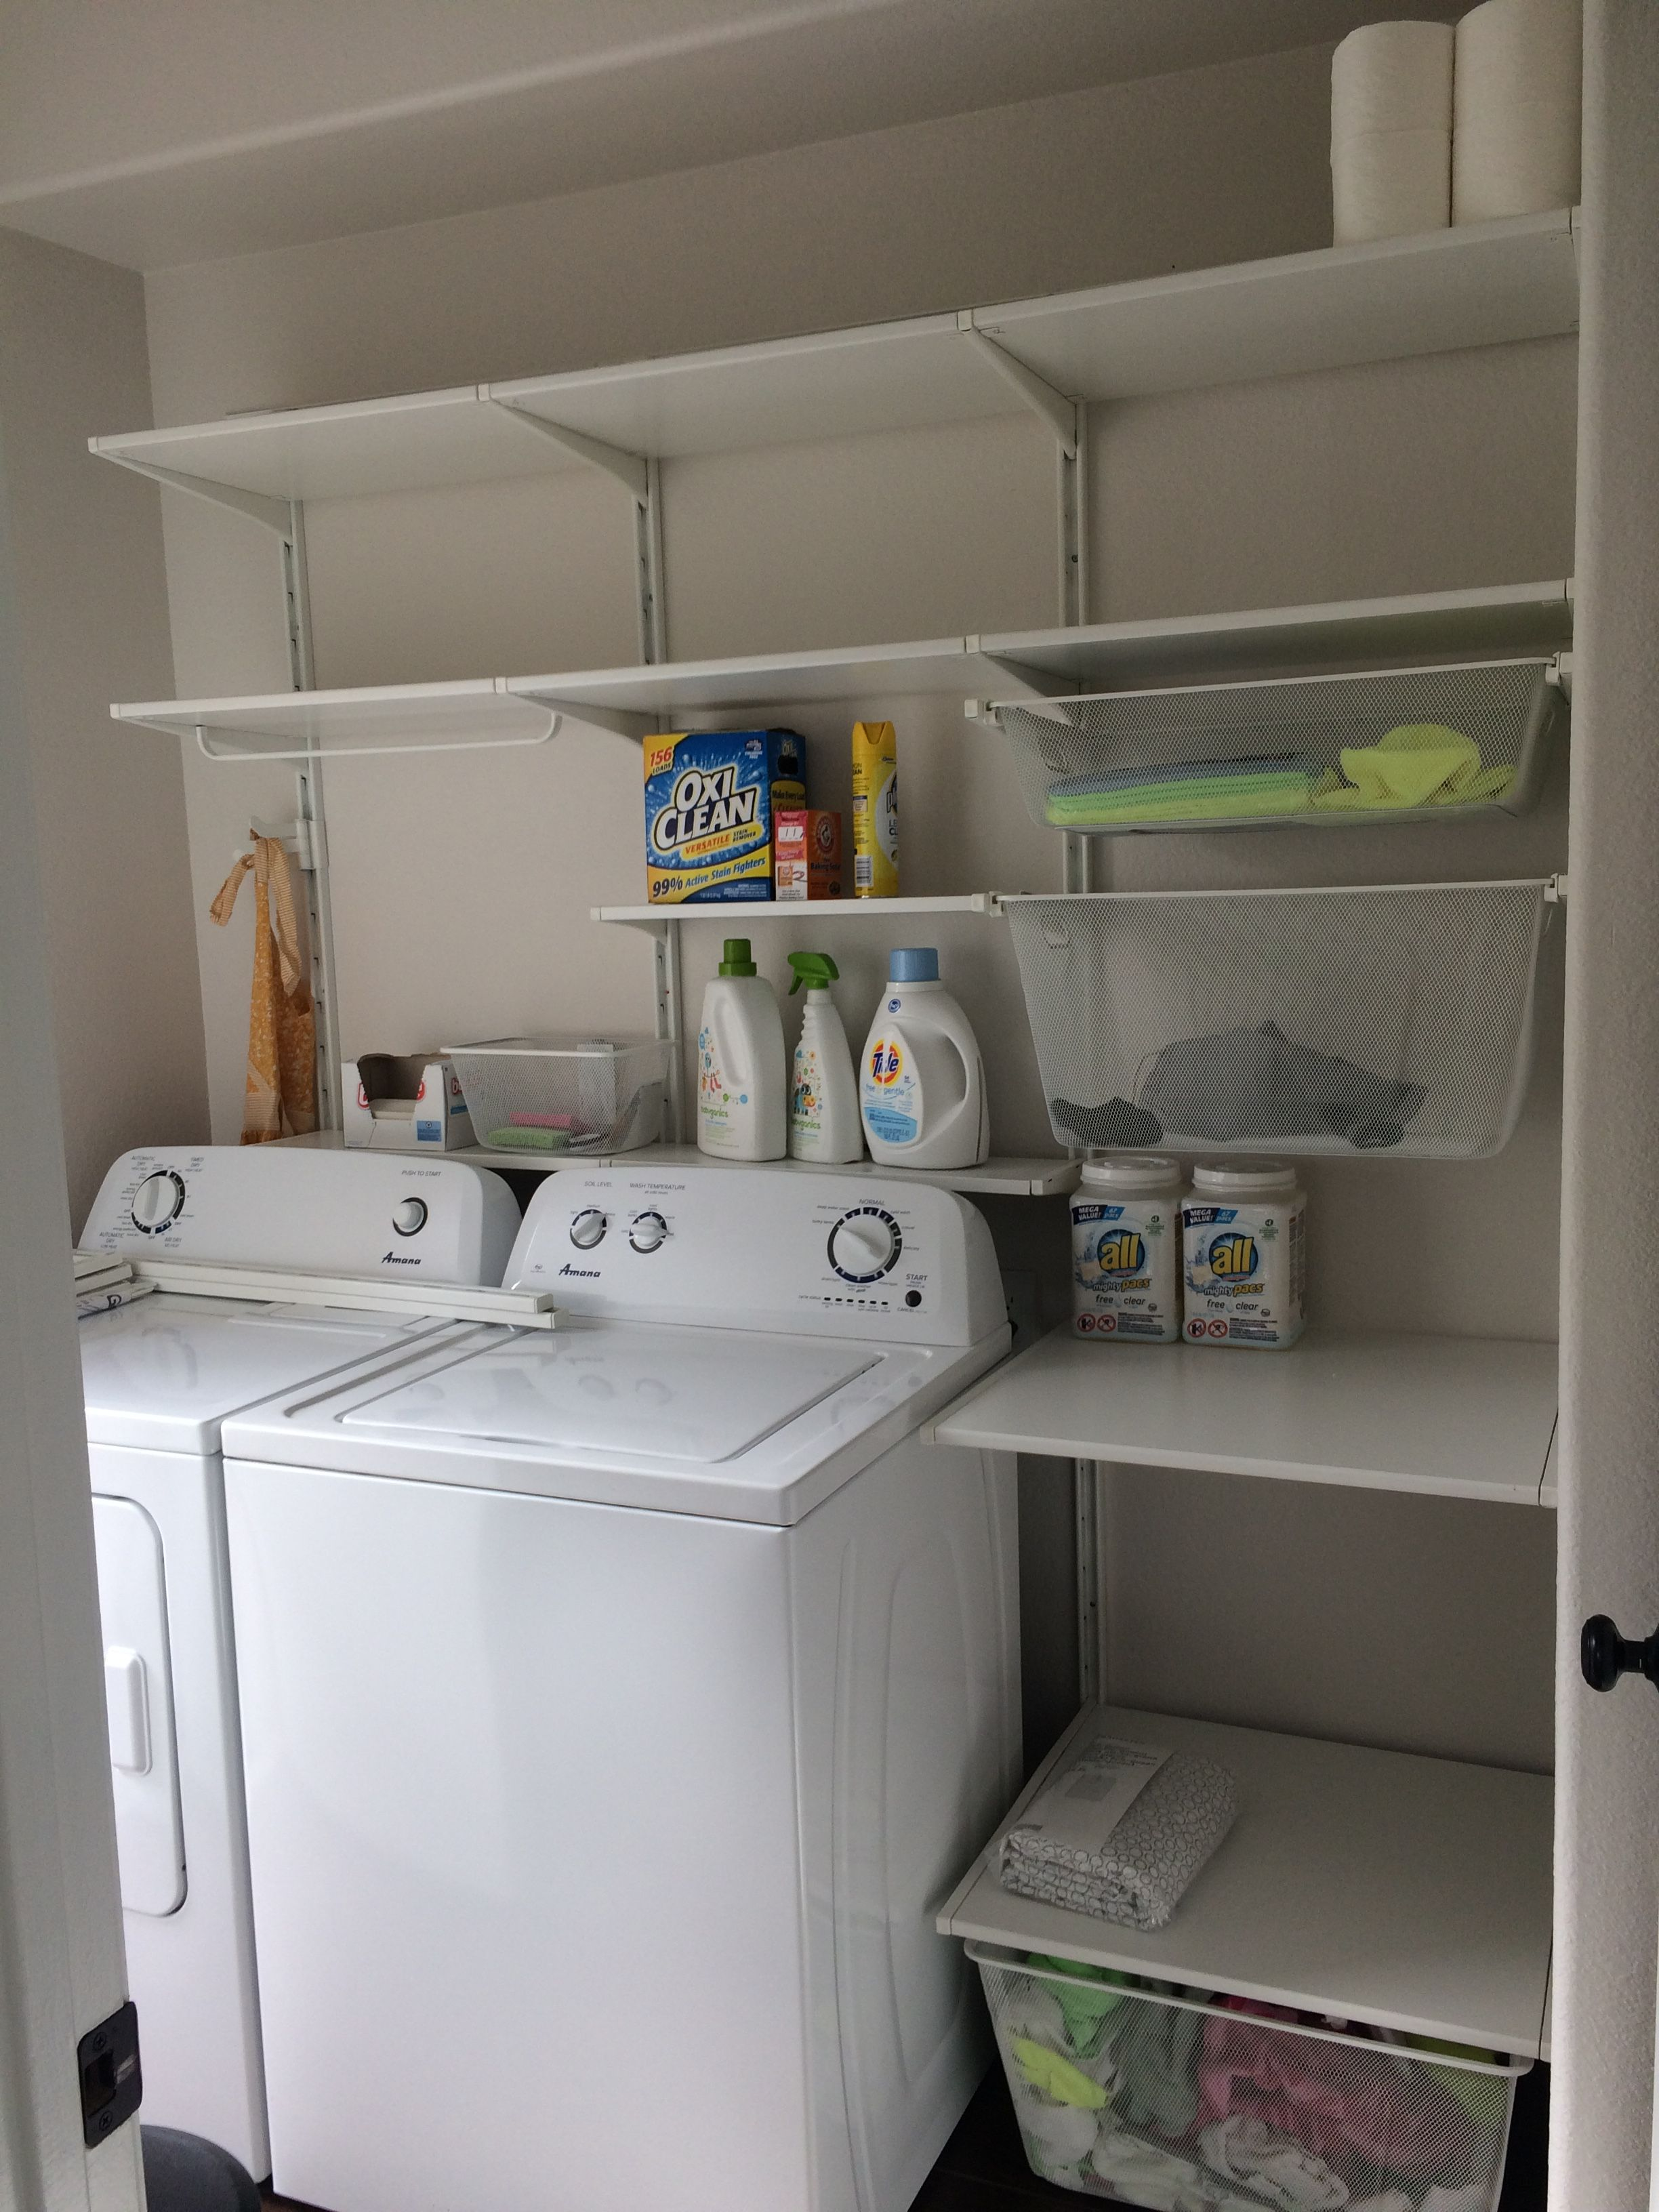 Customized Ikea Algot Laundry Room Even Has A Shelf Behind The